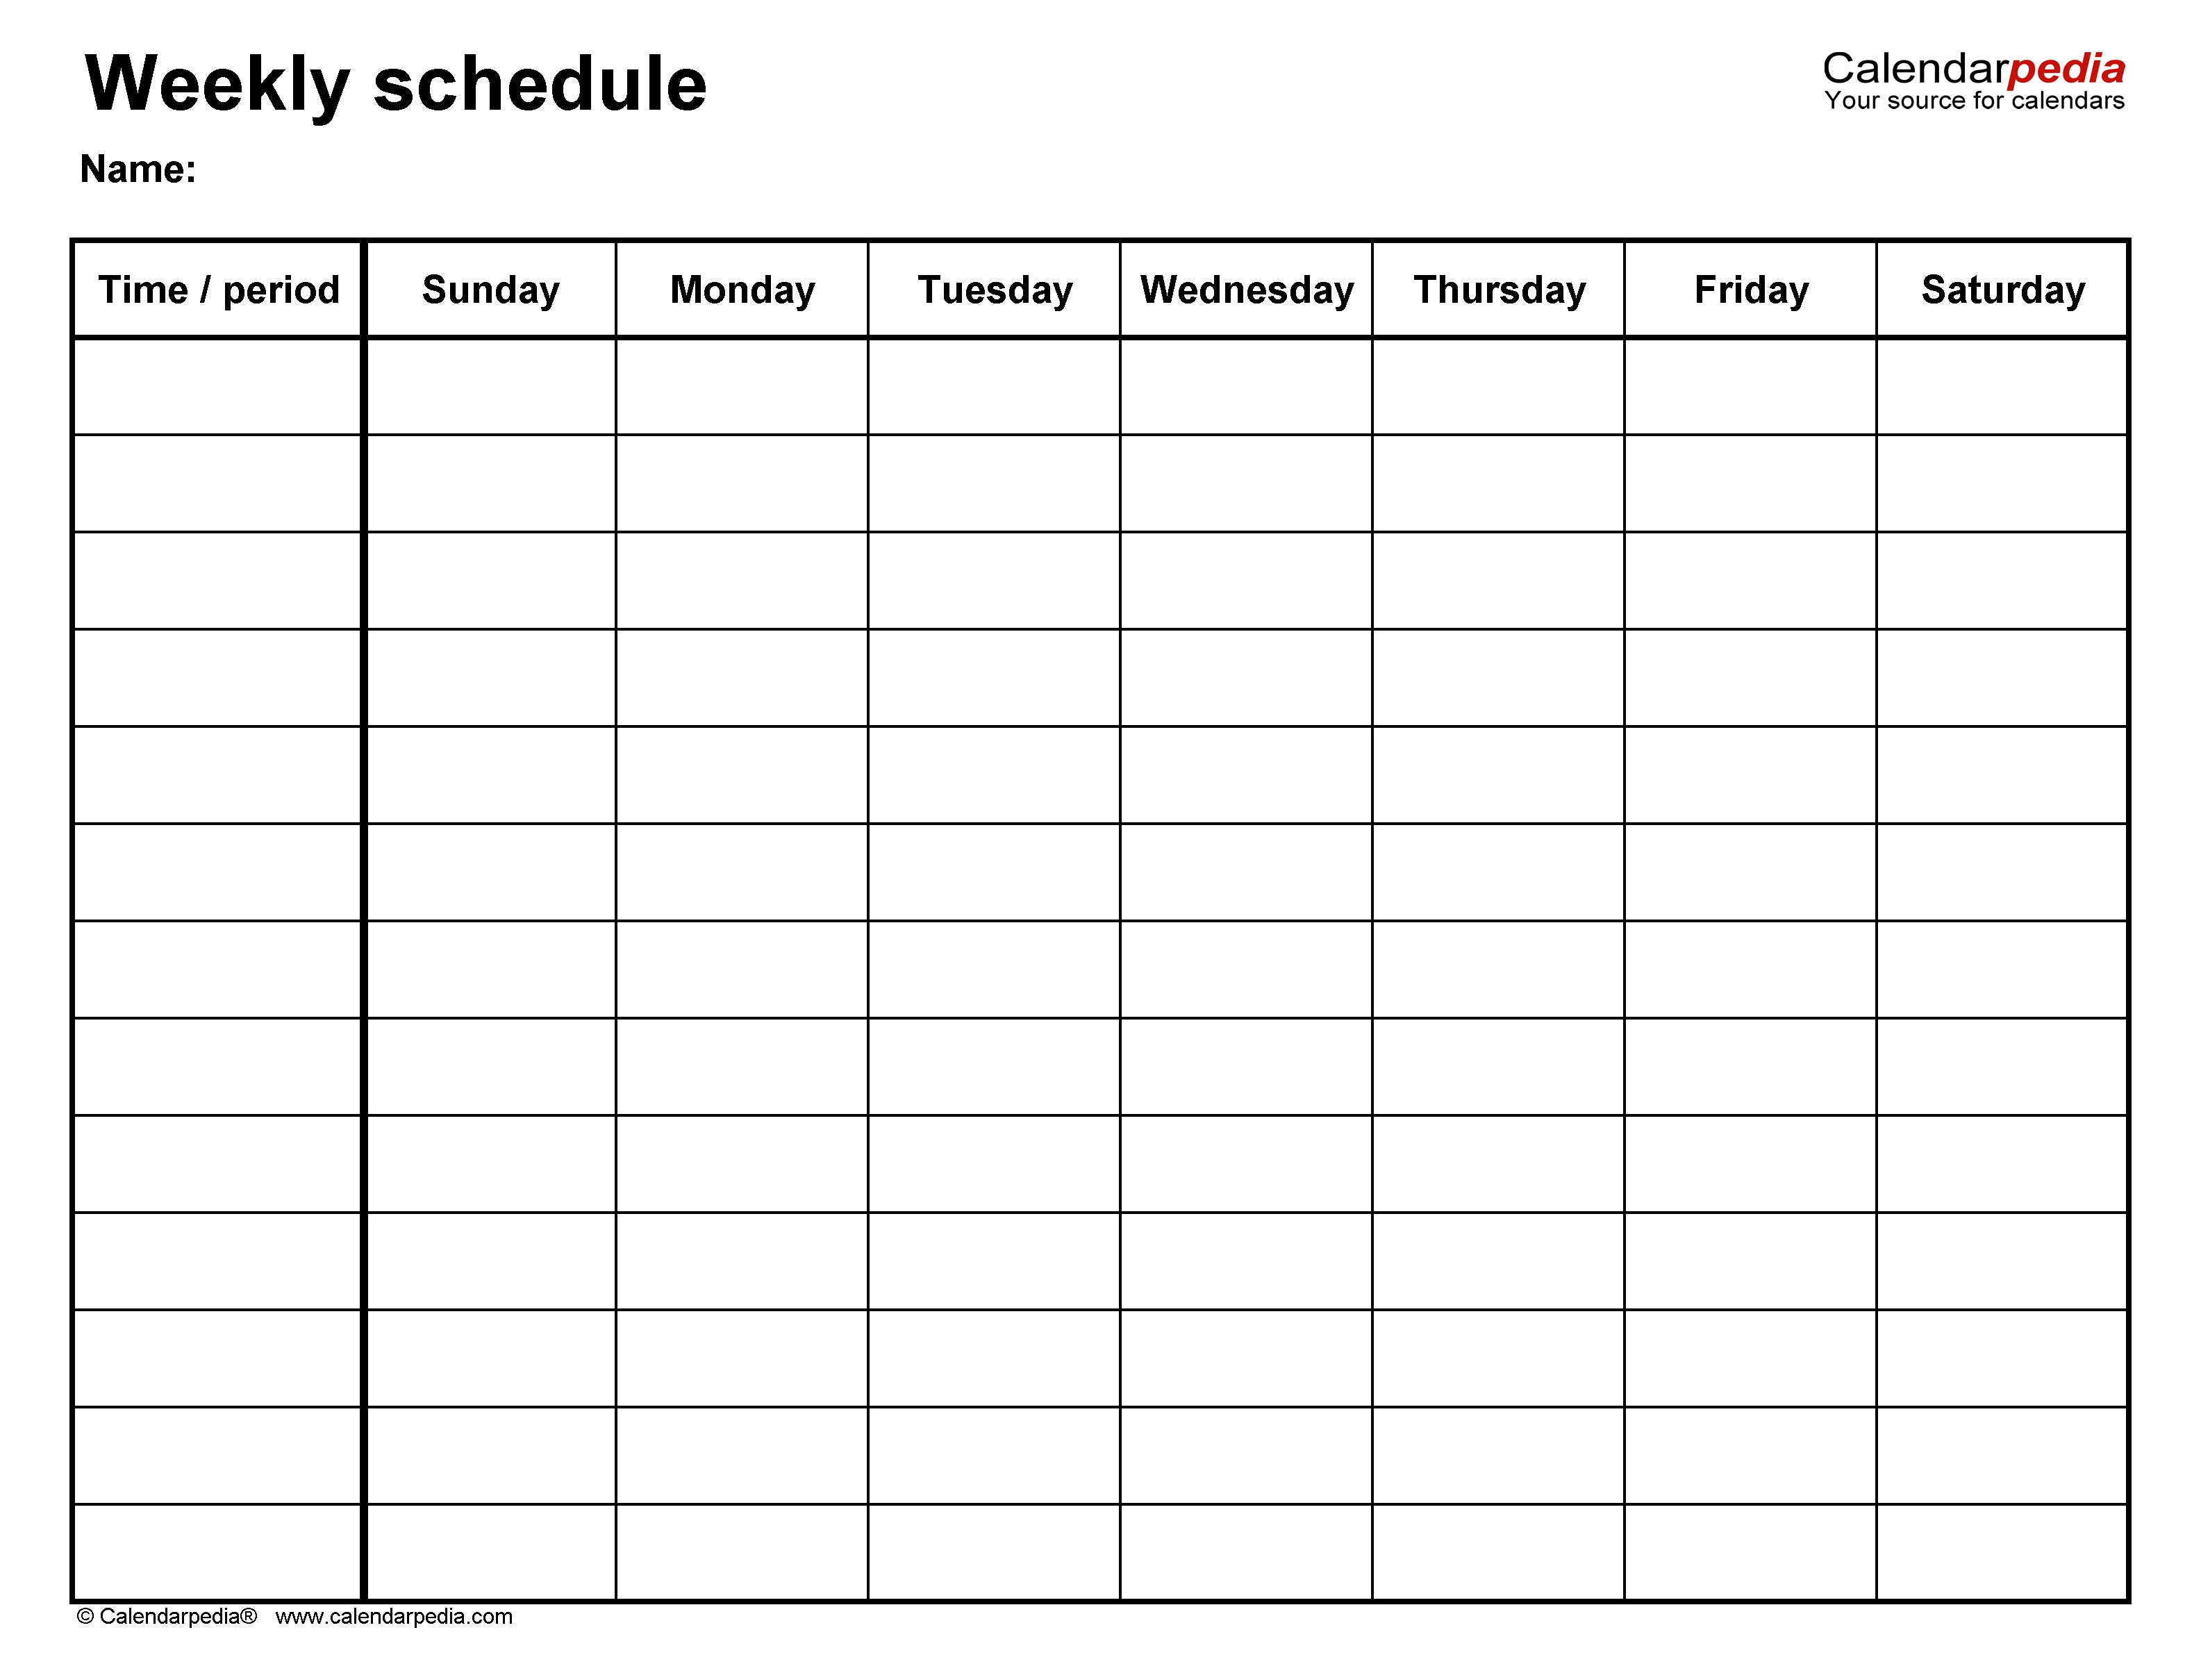 Free Weekly Schedule Templates For Word - 18 Templates  Printable Daily Planner With Times